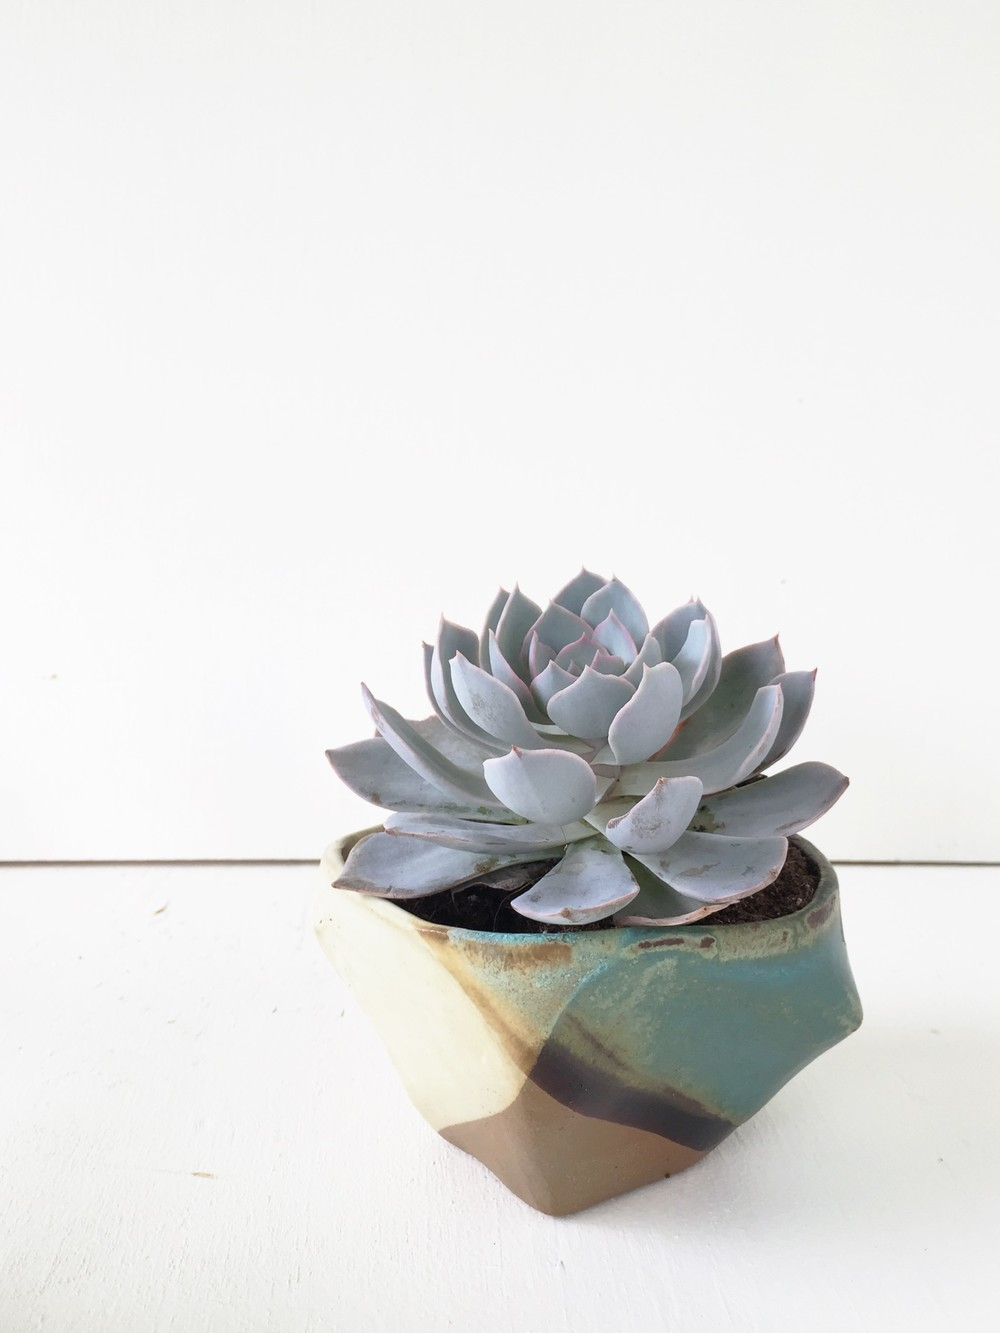 My forms are often inspired by plants! What is your thing?